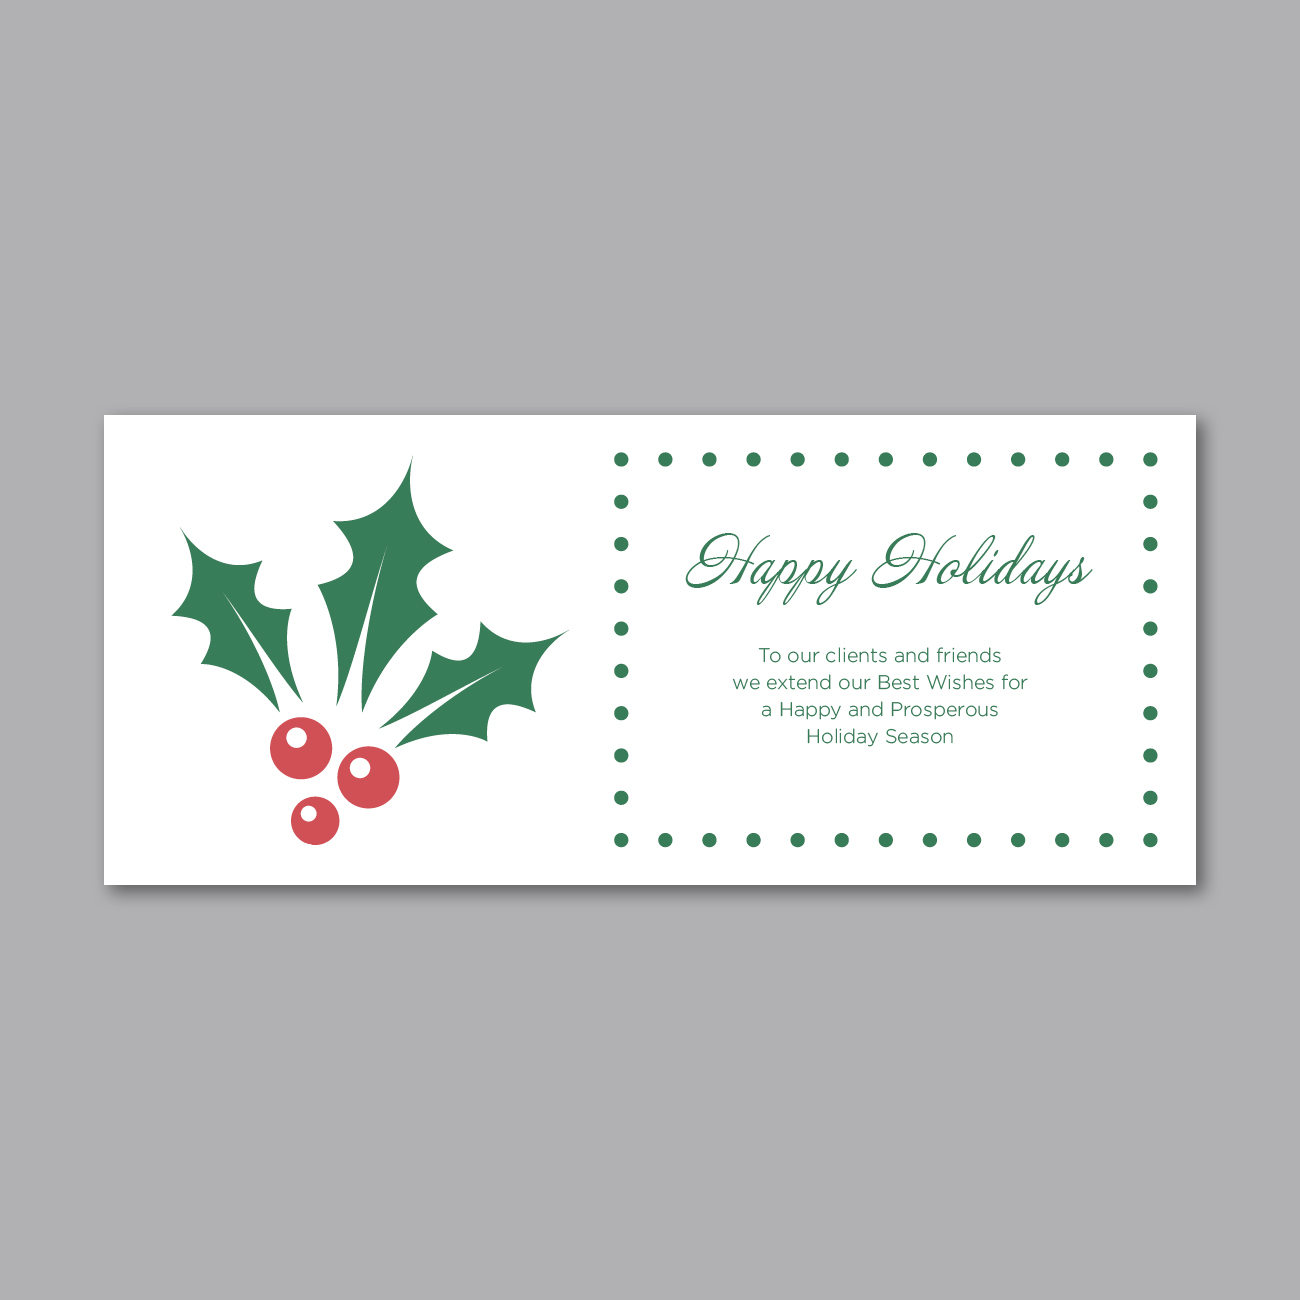 Holiday Greeting Insert - Holly Wishes